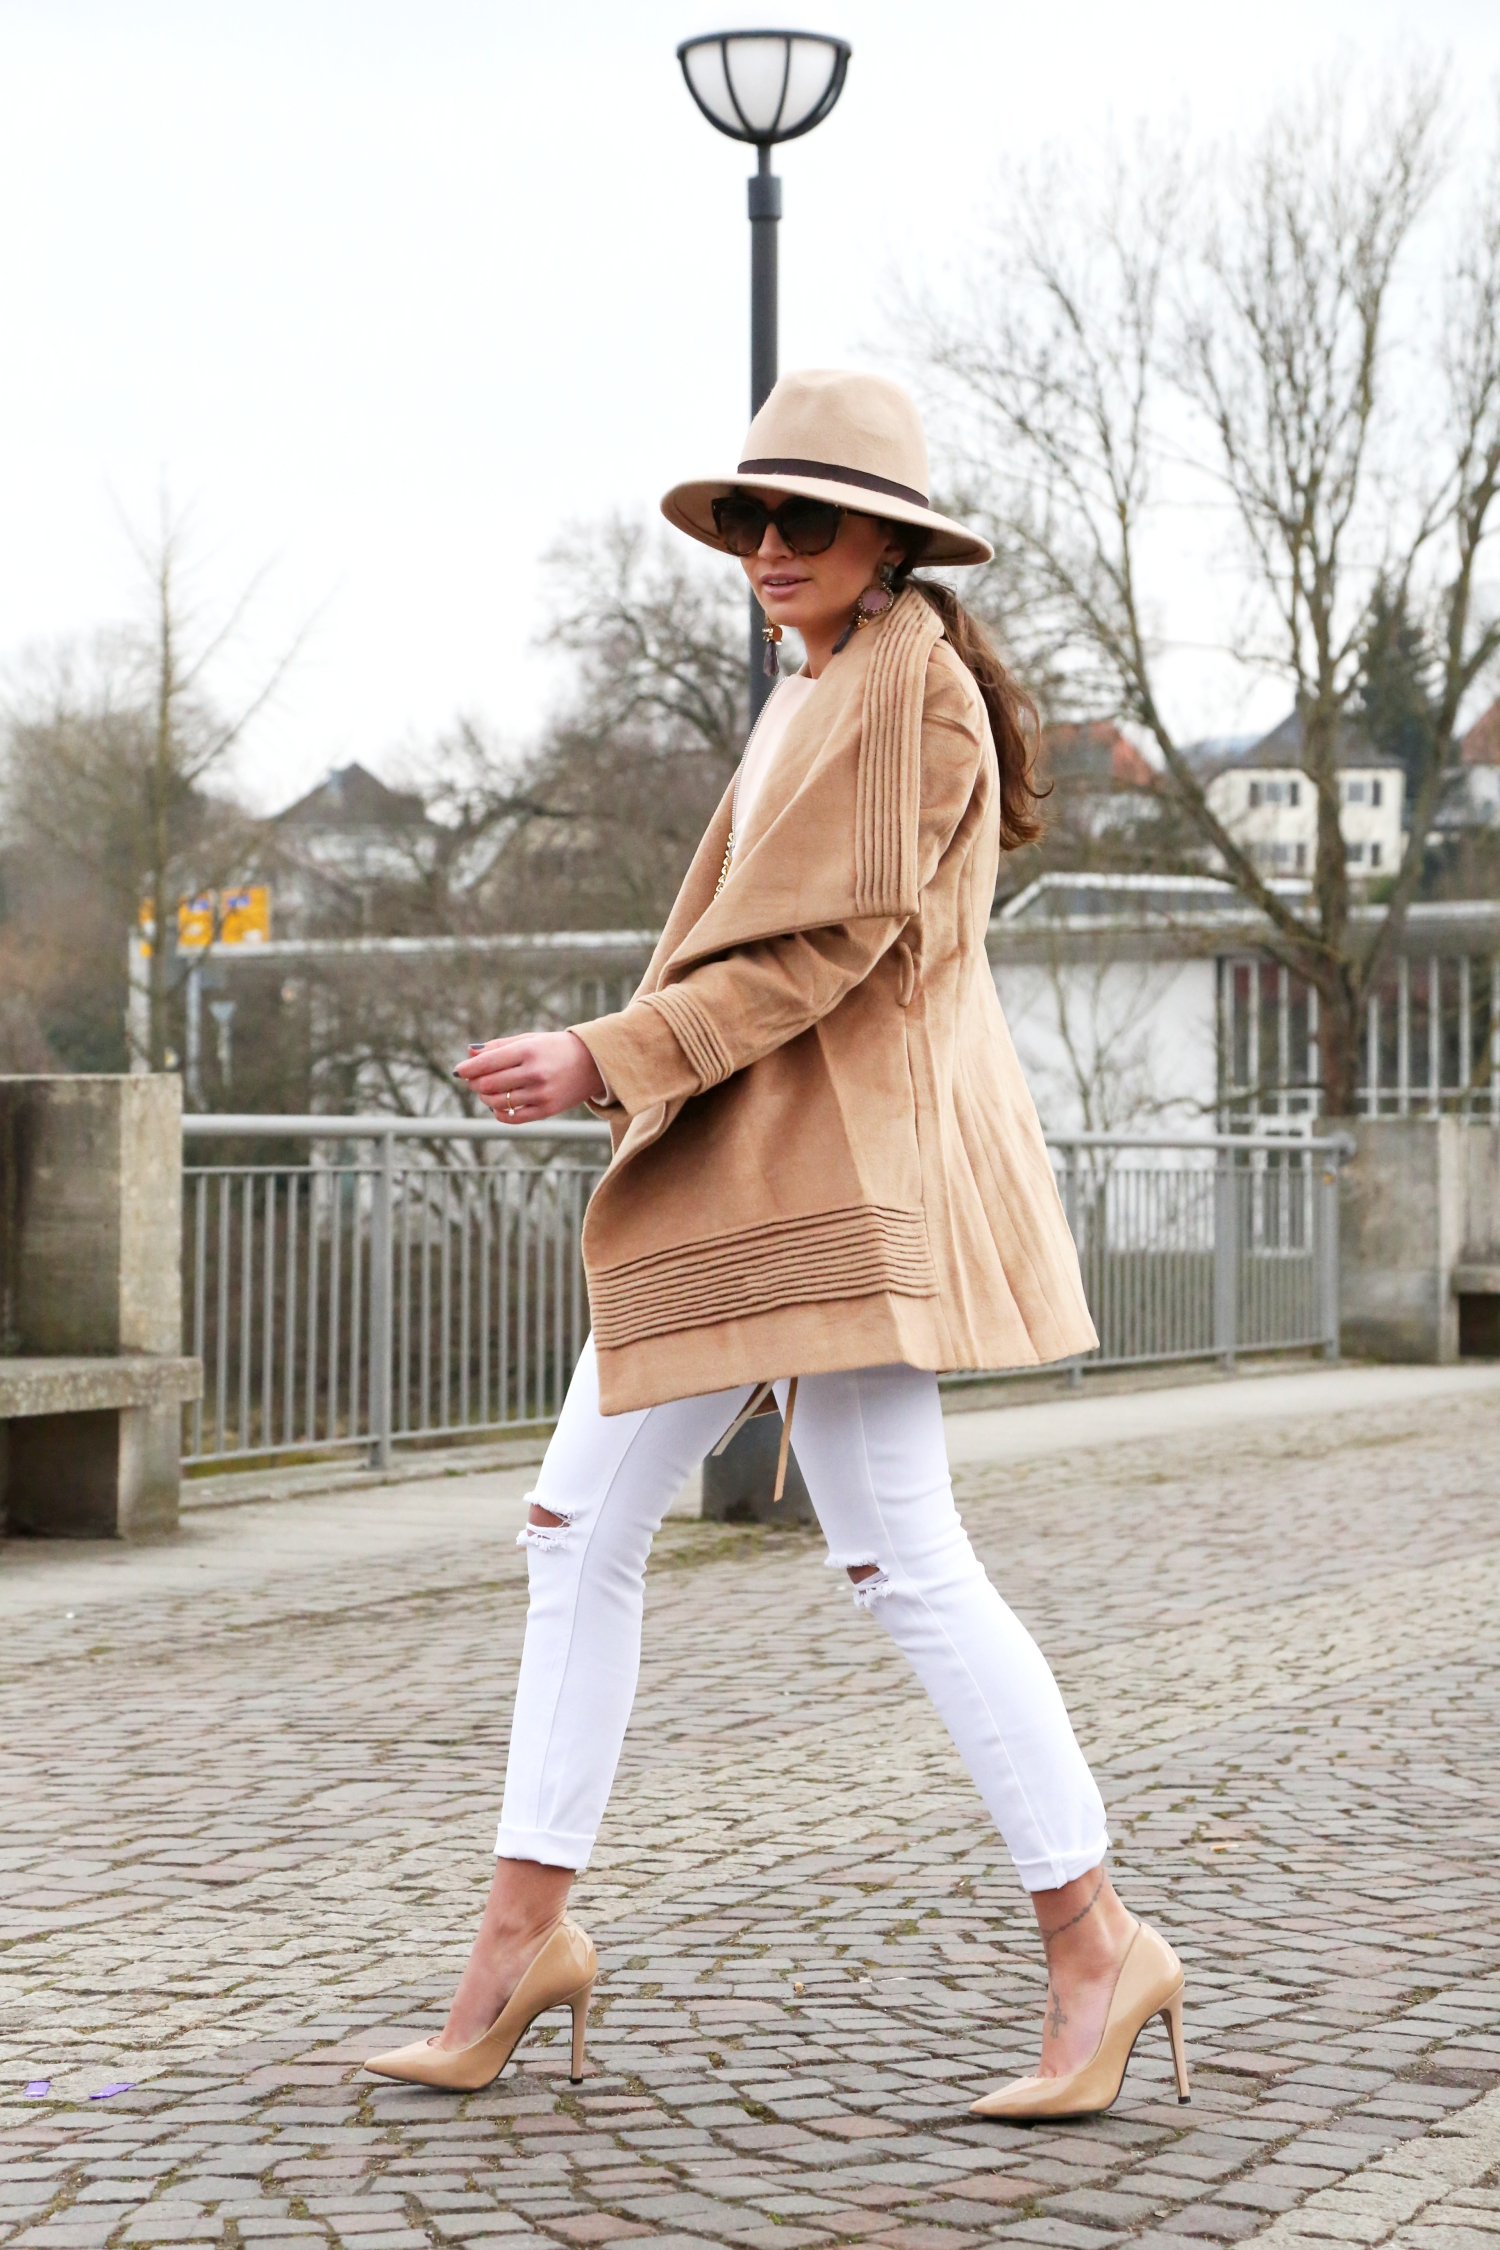 outfit-camel-white-ripped-jeans-rebeccaminkoff-mac-clutch-prada-topshop-fashionhippieloves-german-fashionblogger